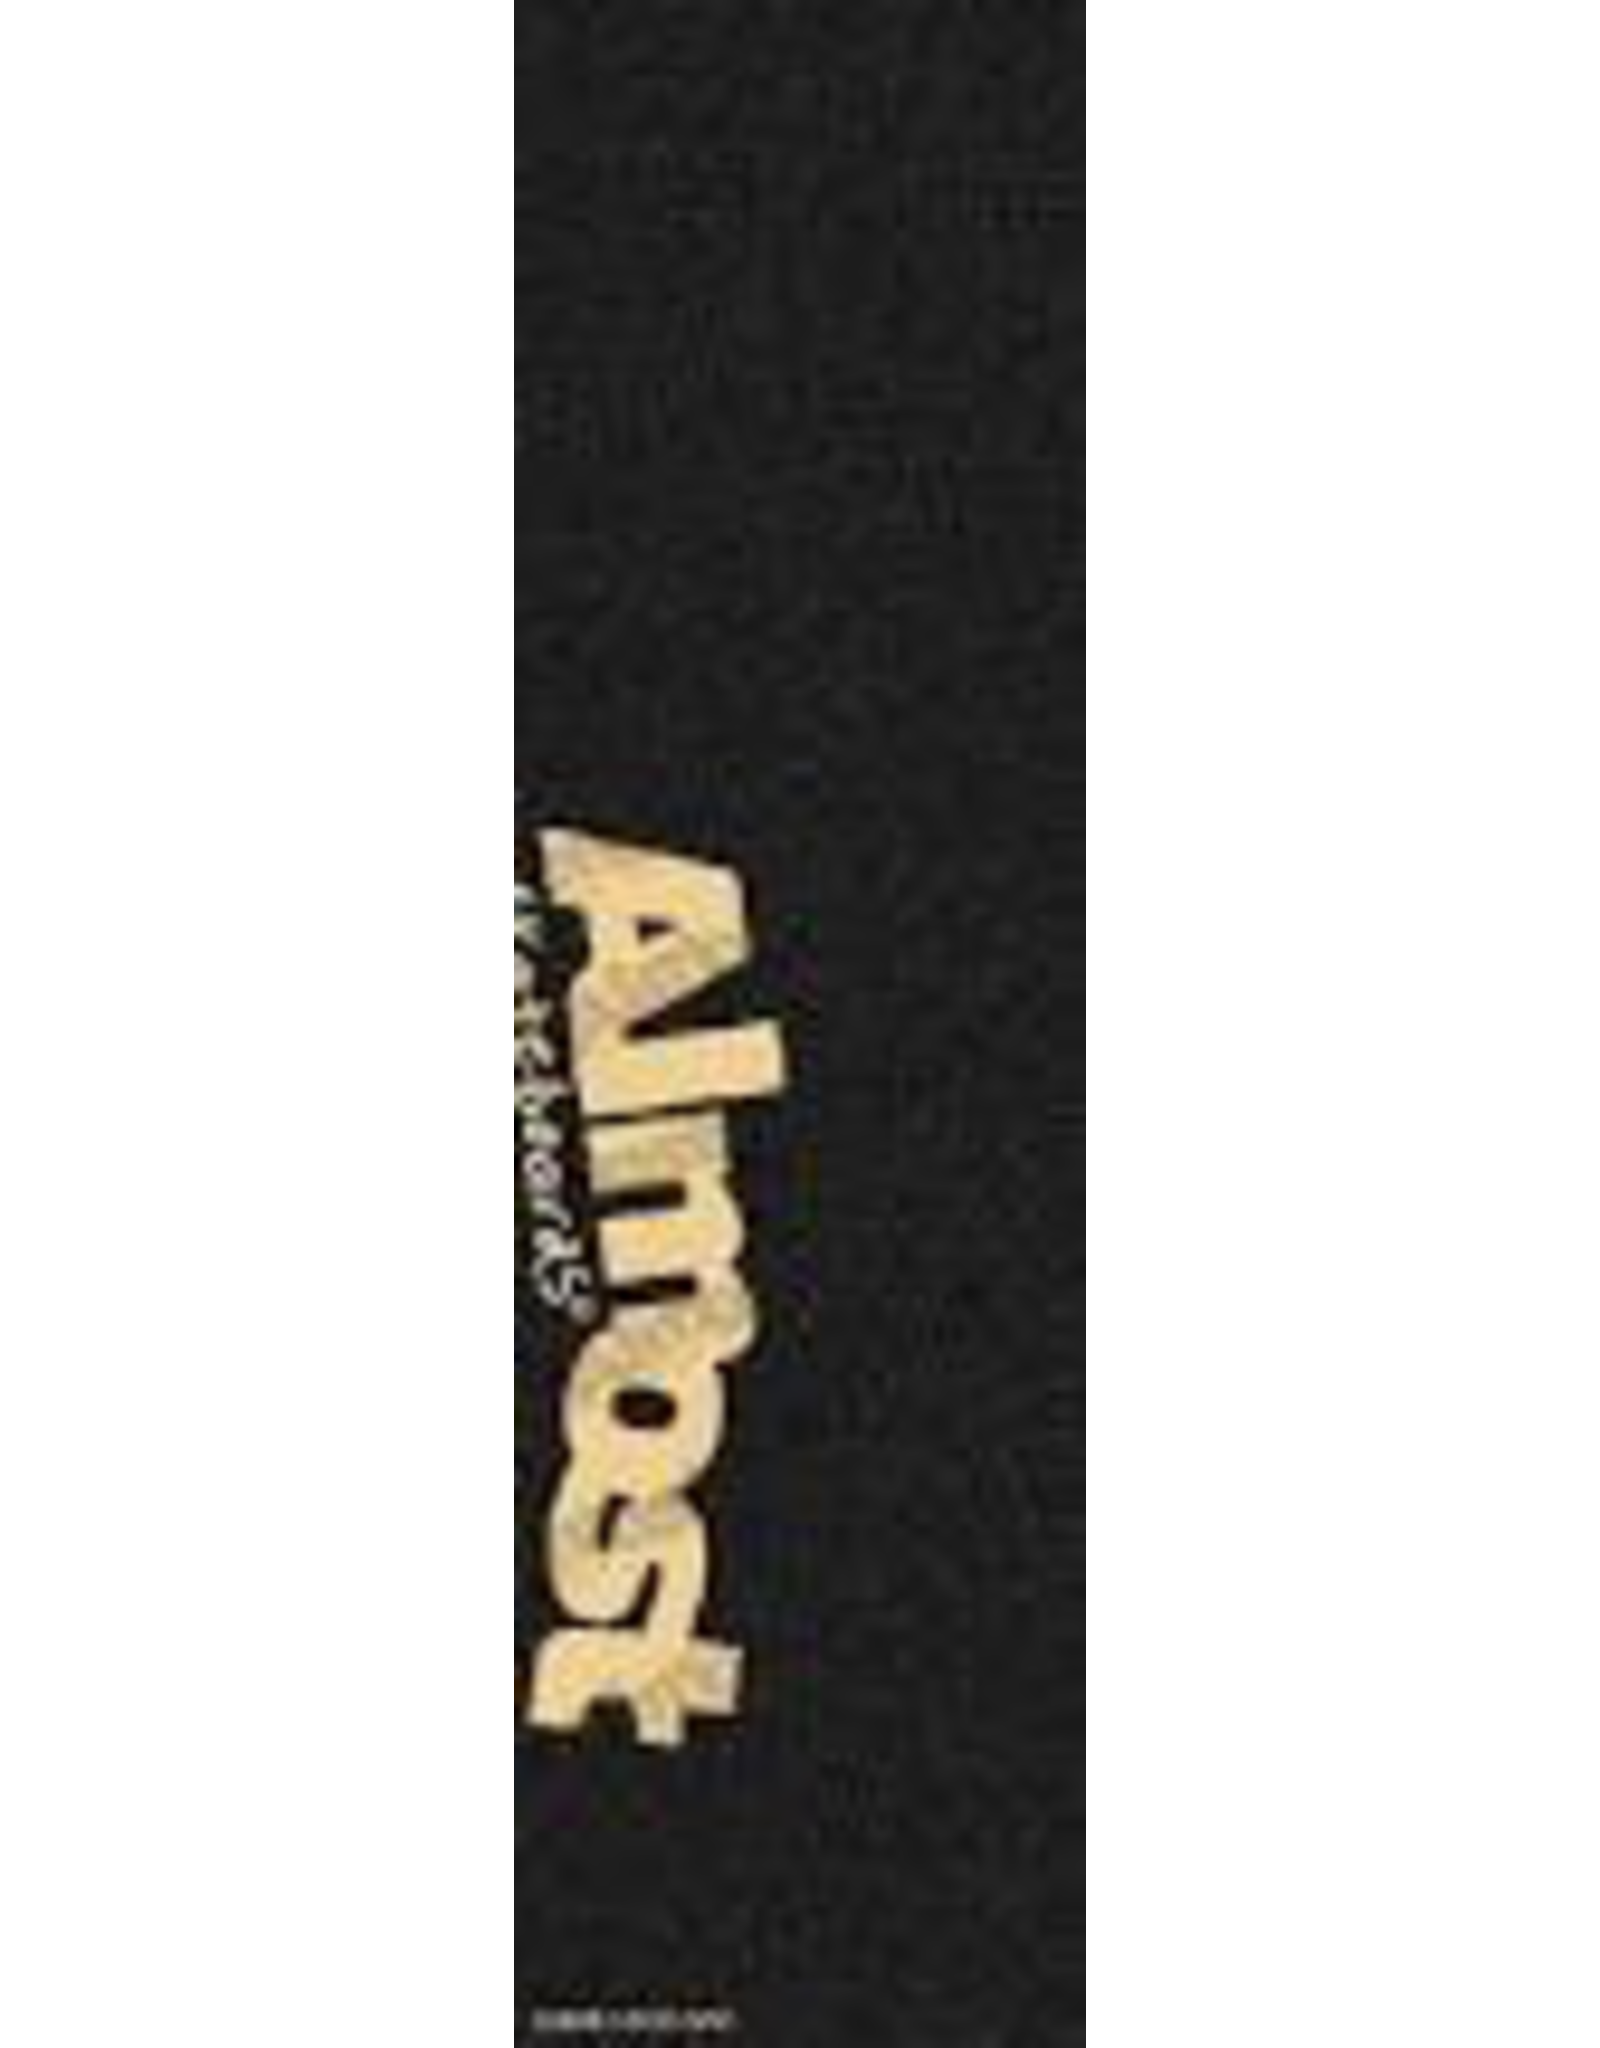 ALMOST ALMOST CLEAR LOGO GRAPHIC SKATEBOARD GRIP TAPE